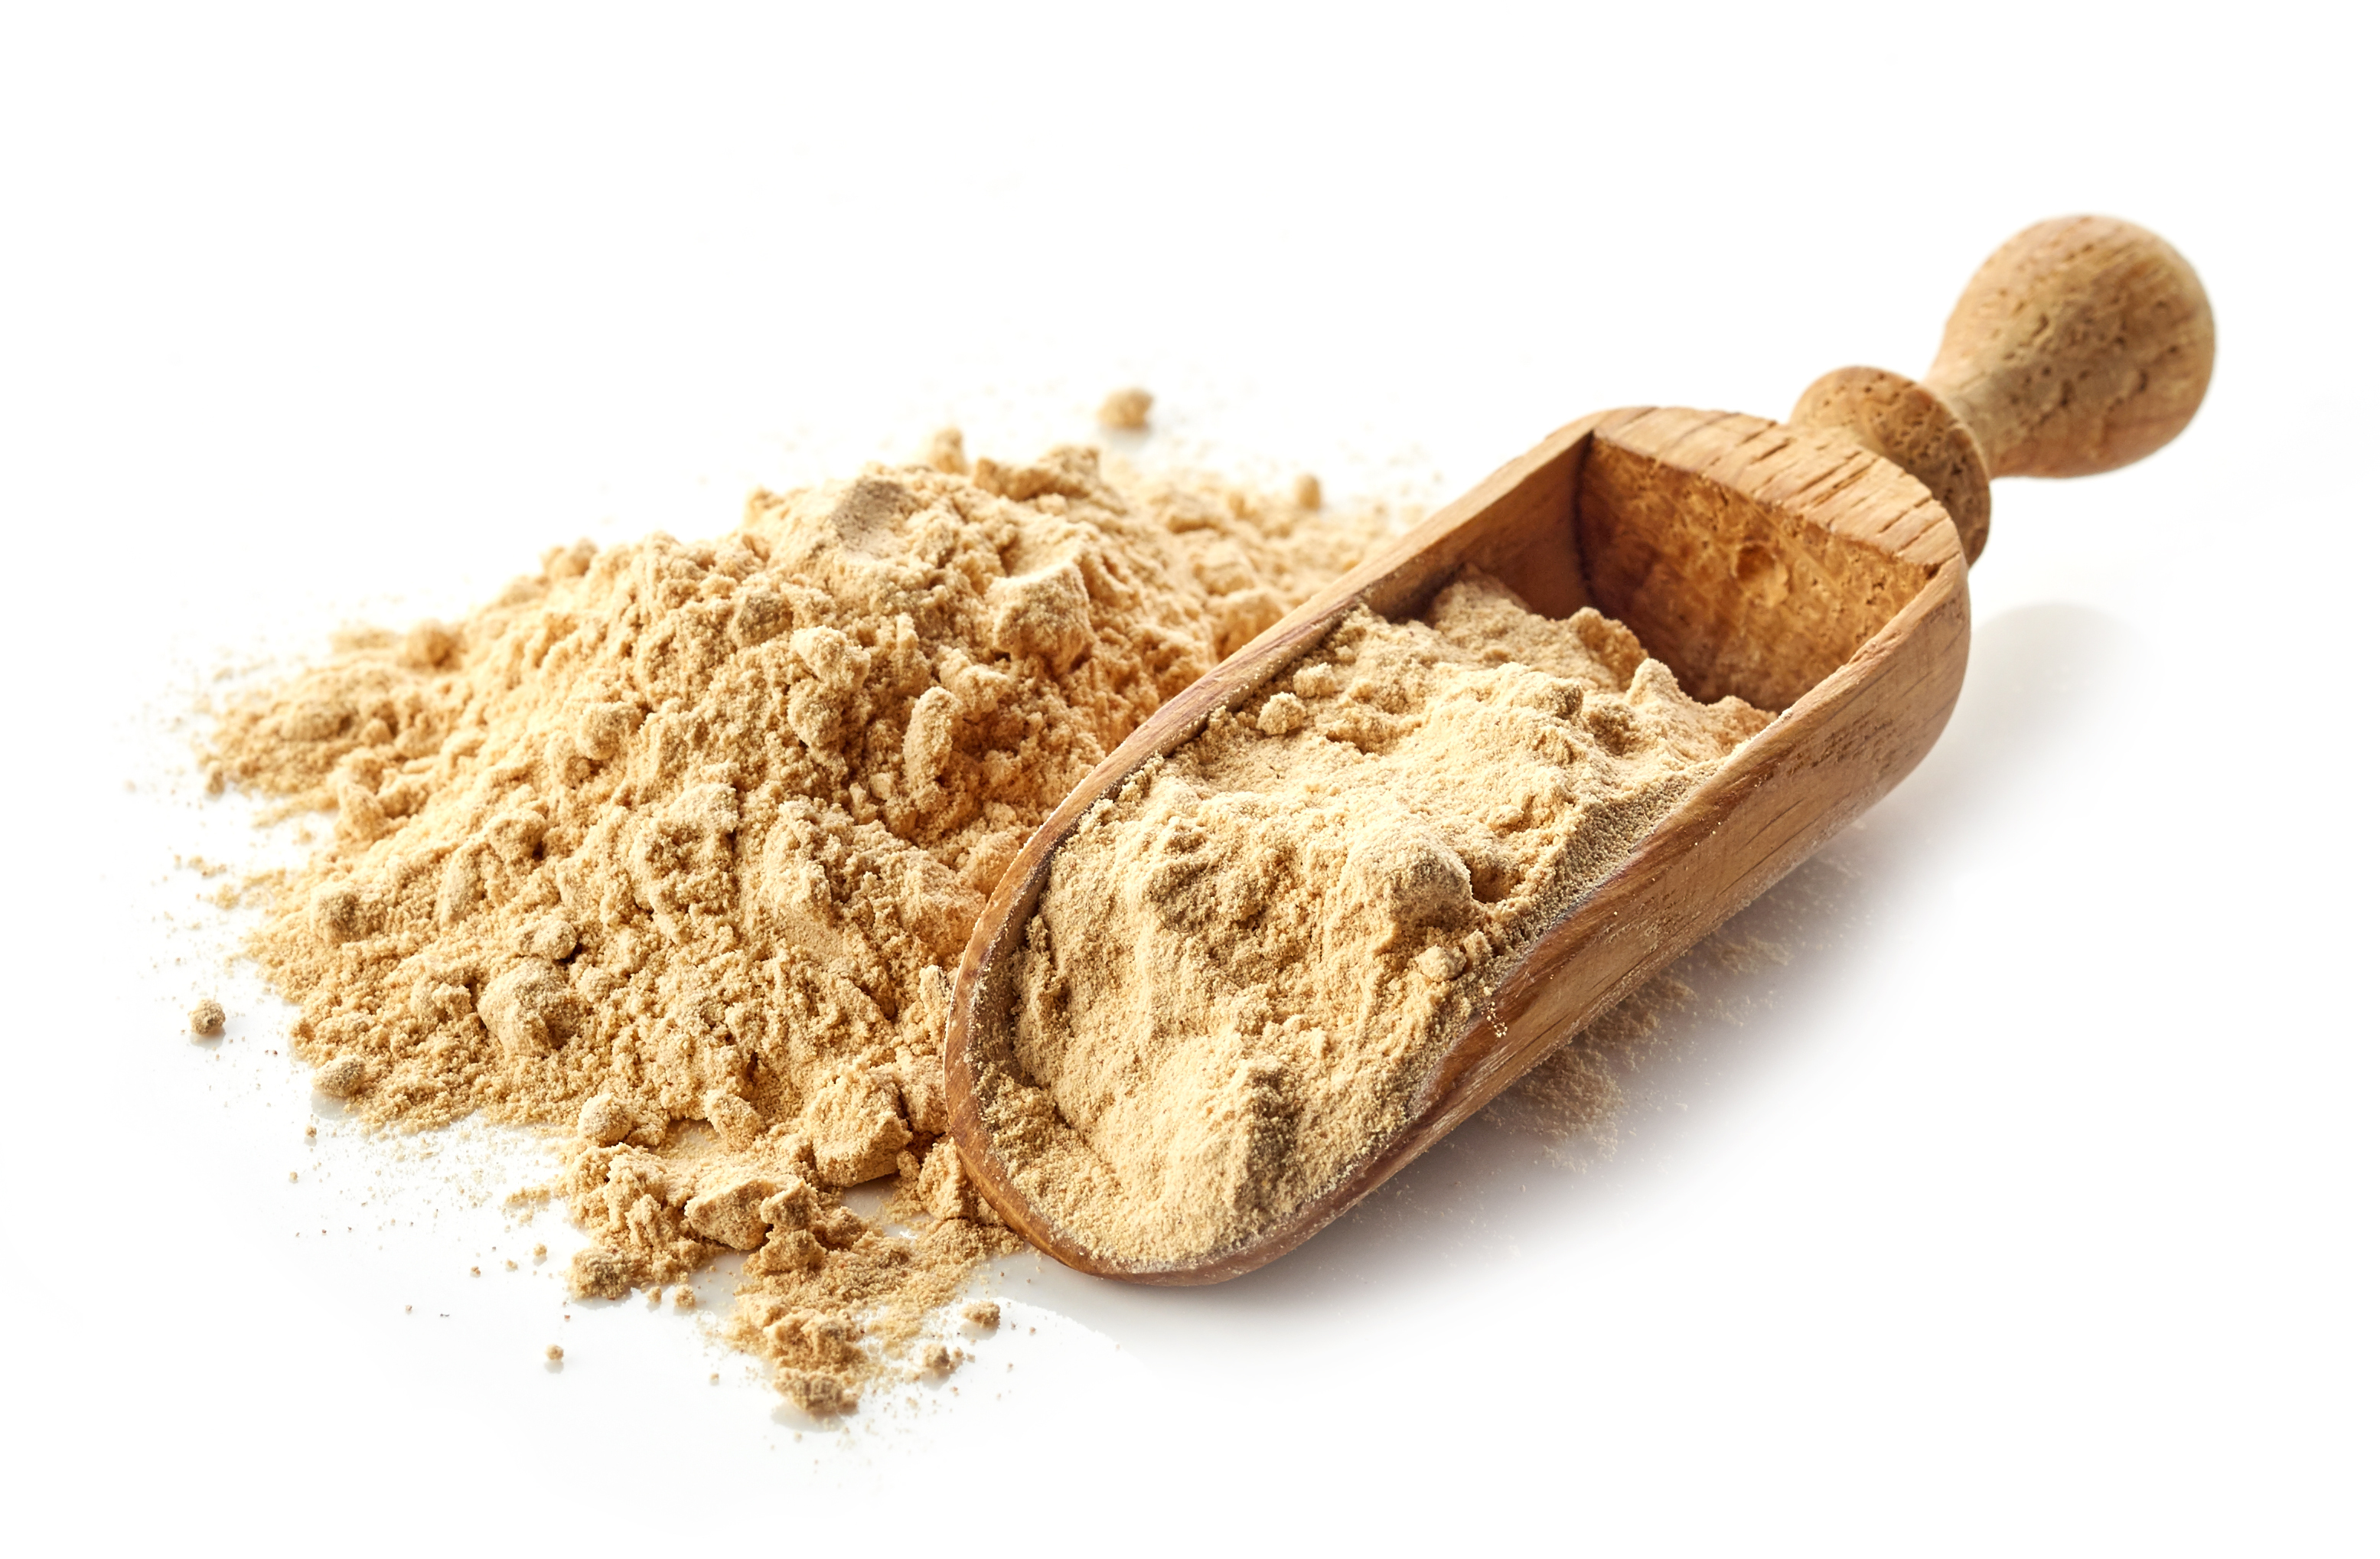 bigstock-heap-of-maca-powder-116742662.jpg